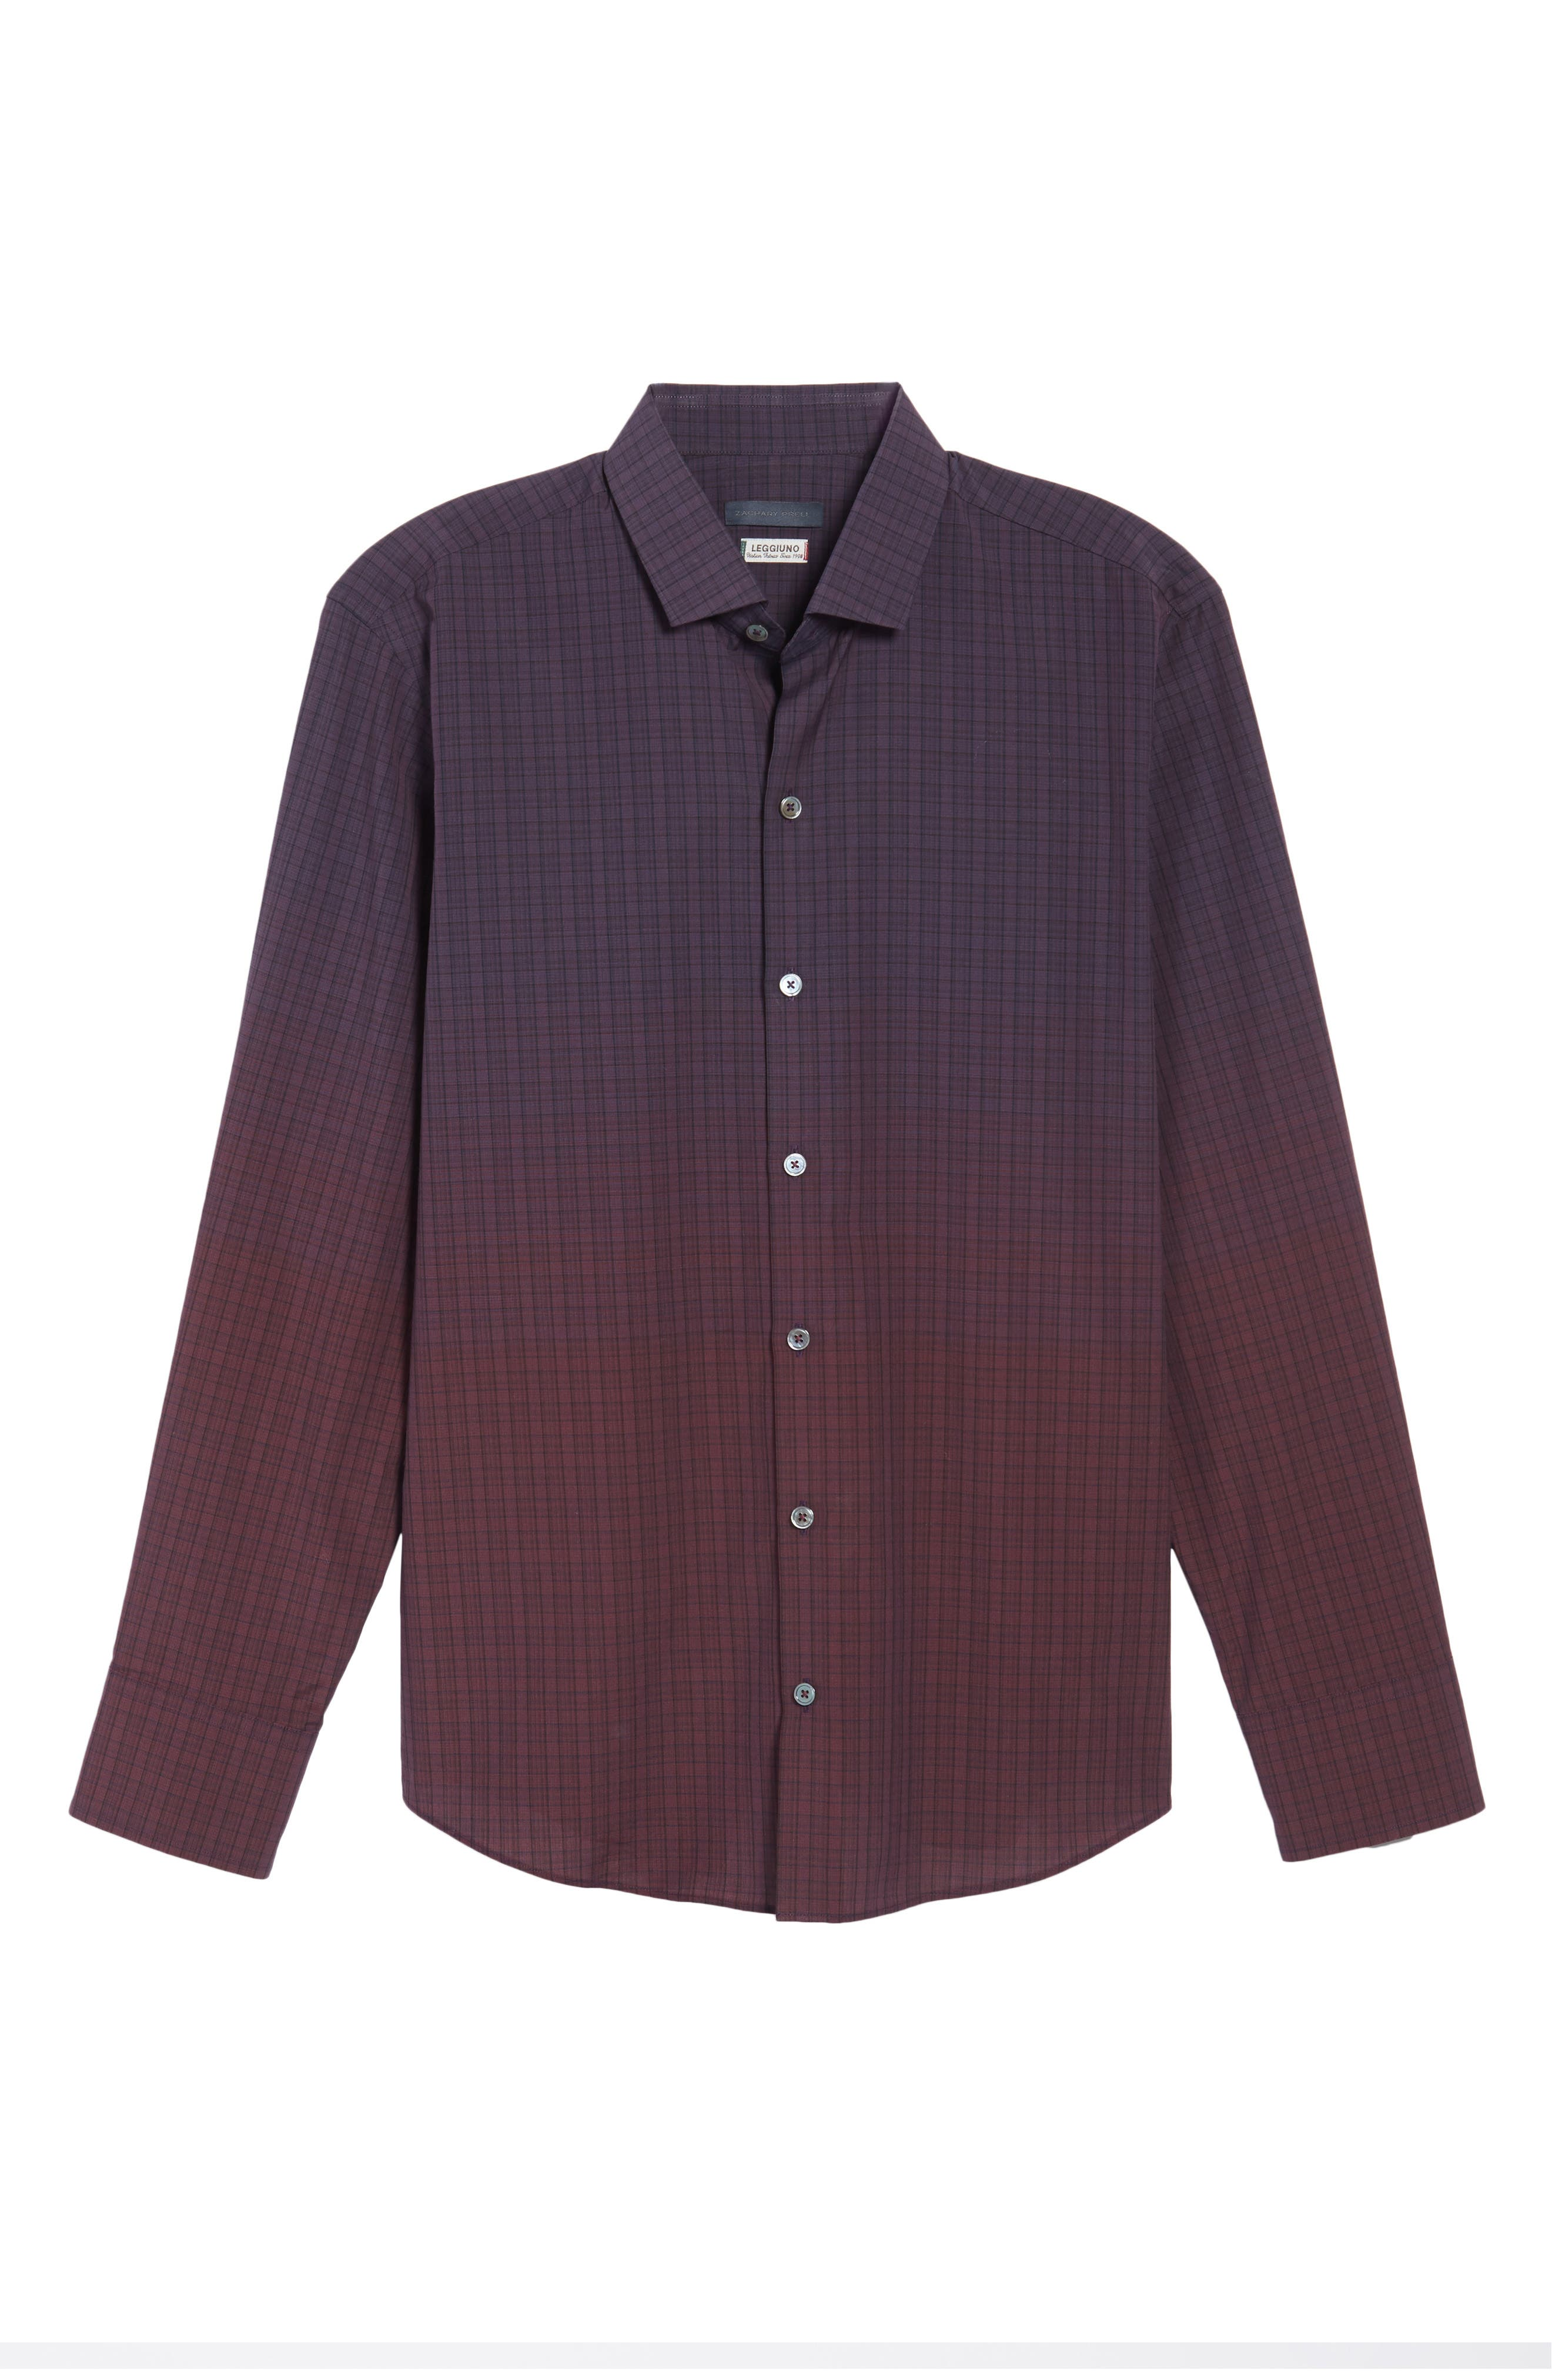 Wein Slim Fit Check Sport Shirt,                             Alternate thumbnail 6, color,                             Wine